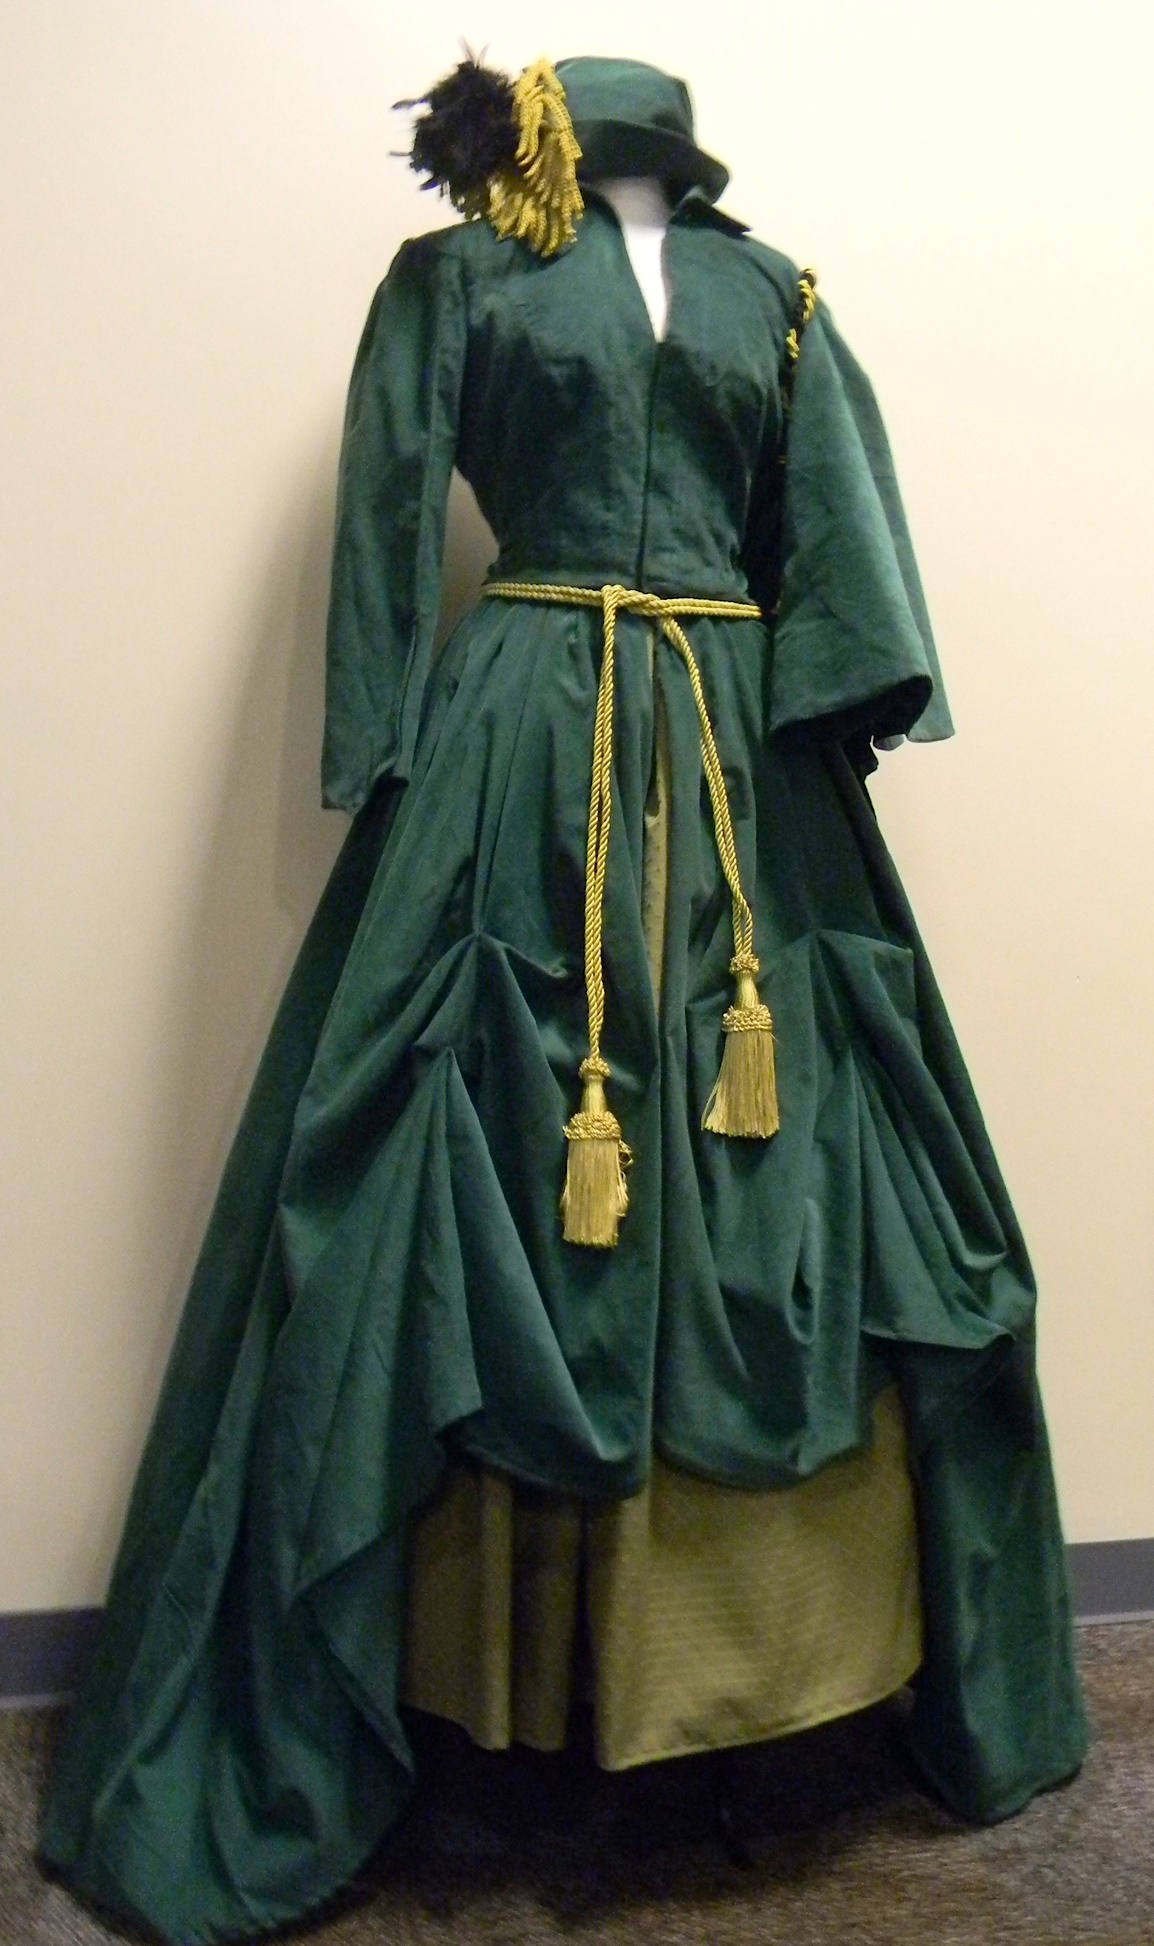 Scarlett O'Hara Dress Replica.jpg